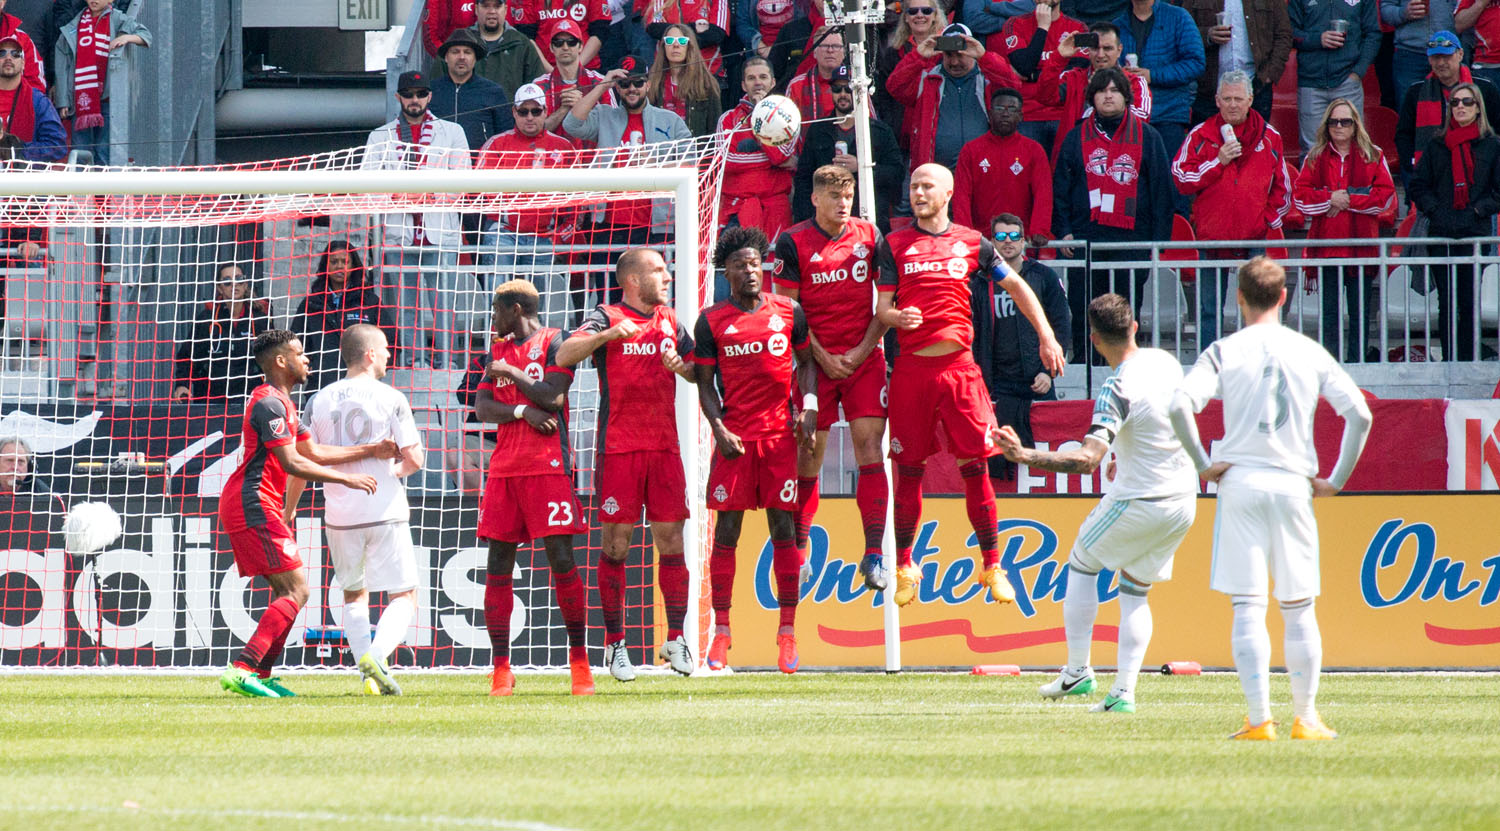 Toronto FC makes a defensive wall during a free kick from Minnesota United FC on May 13, 2017.